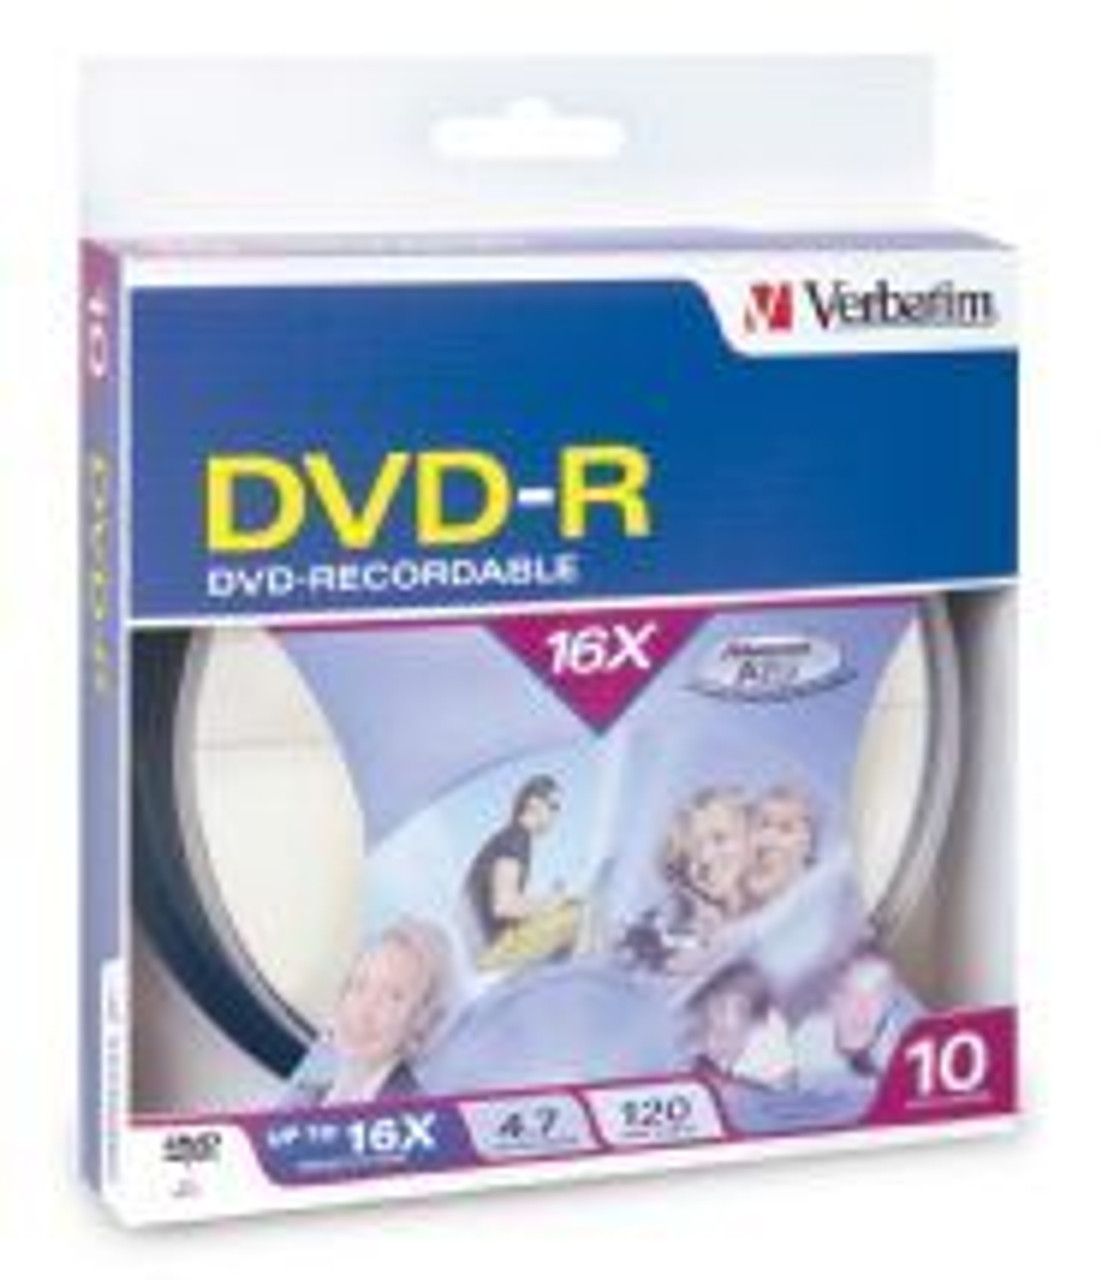 Image for Verbatim DVD-R 4.7GB 10 Pack Spindle 16x (95100) CX Computer Superstore